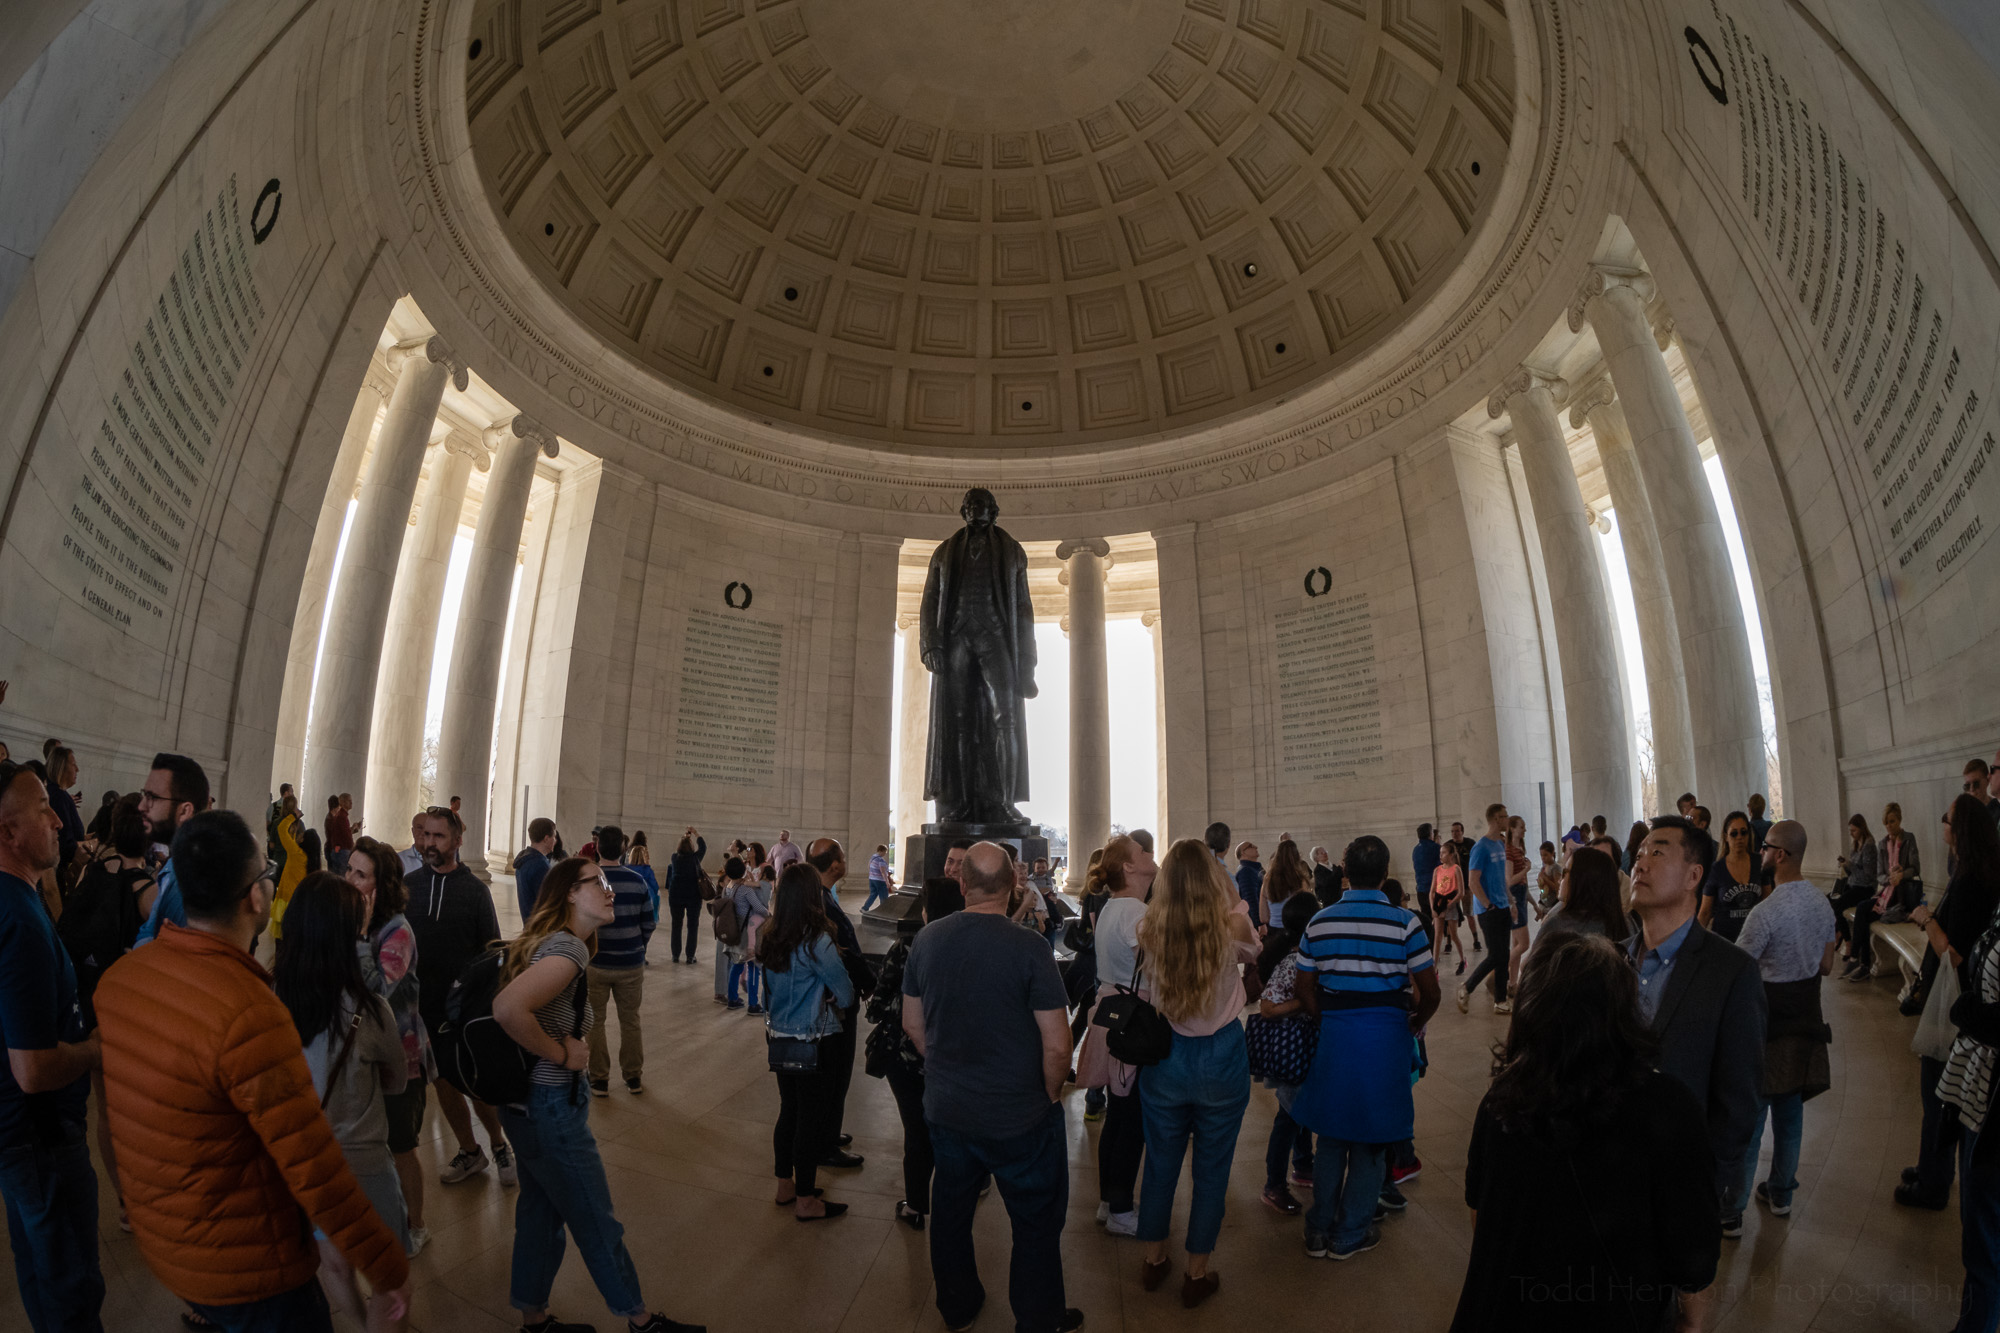 Cherry Blossom Crowds inside the Jefferson Memorial